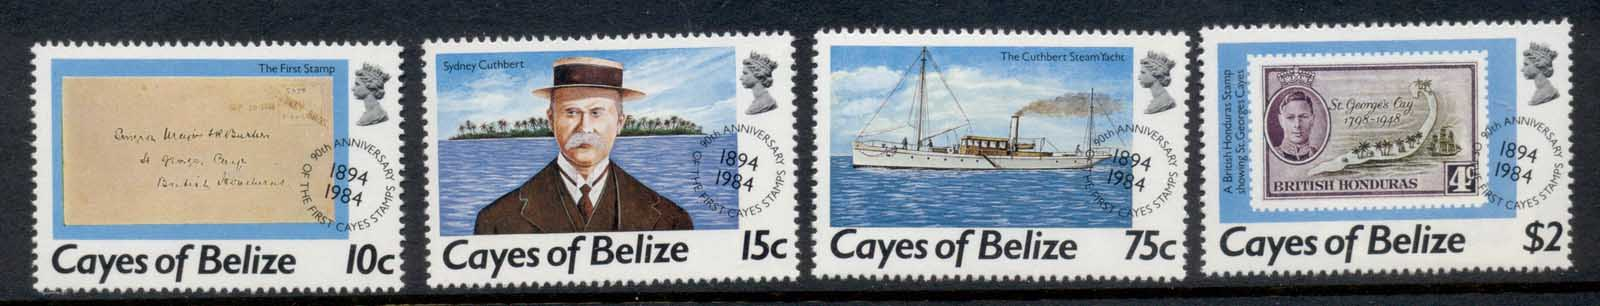 Cayes of Belize 1984 Mail Services MUH